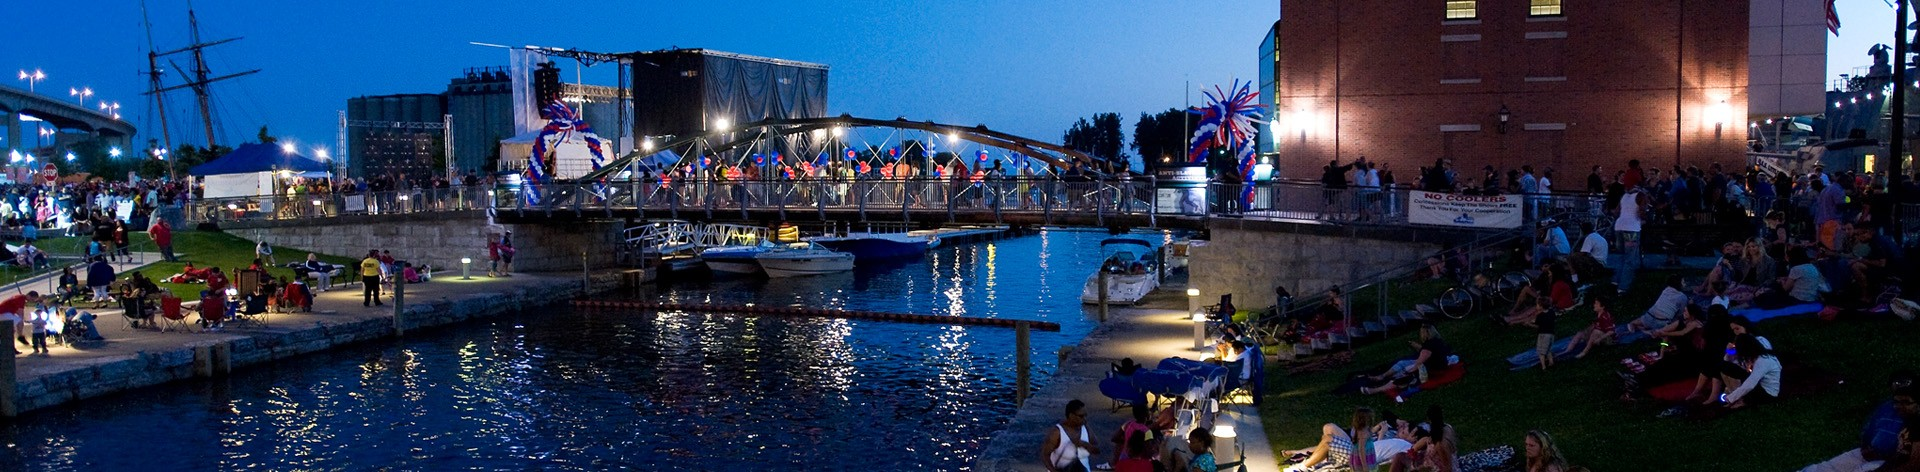 Magic Hat Brewery Burlington, BE IN THE KNOW! Canalside Buffalo is Growing! | The BCN